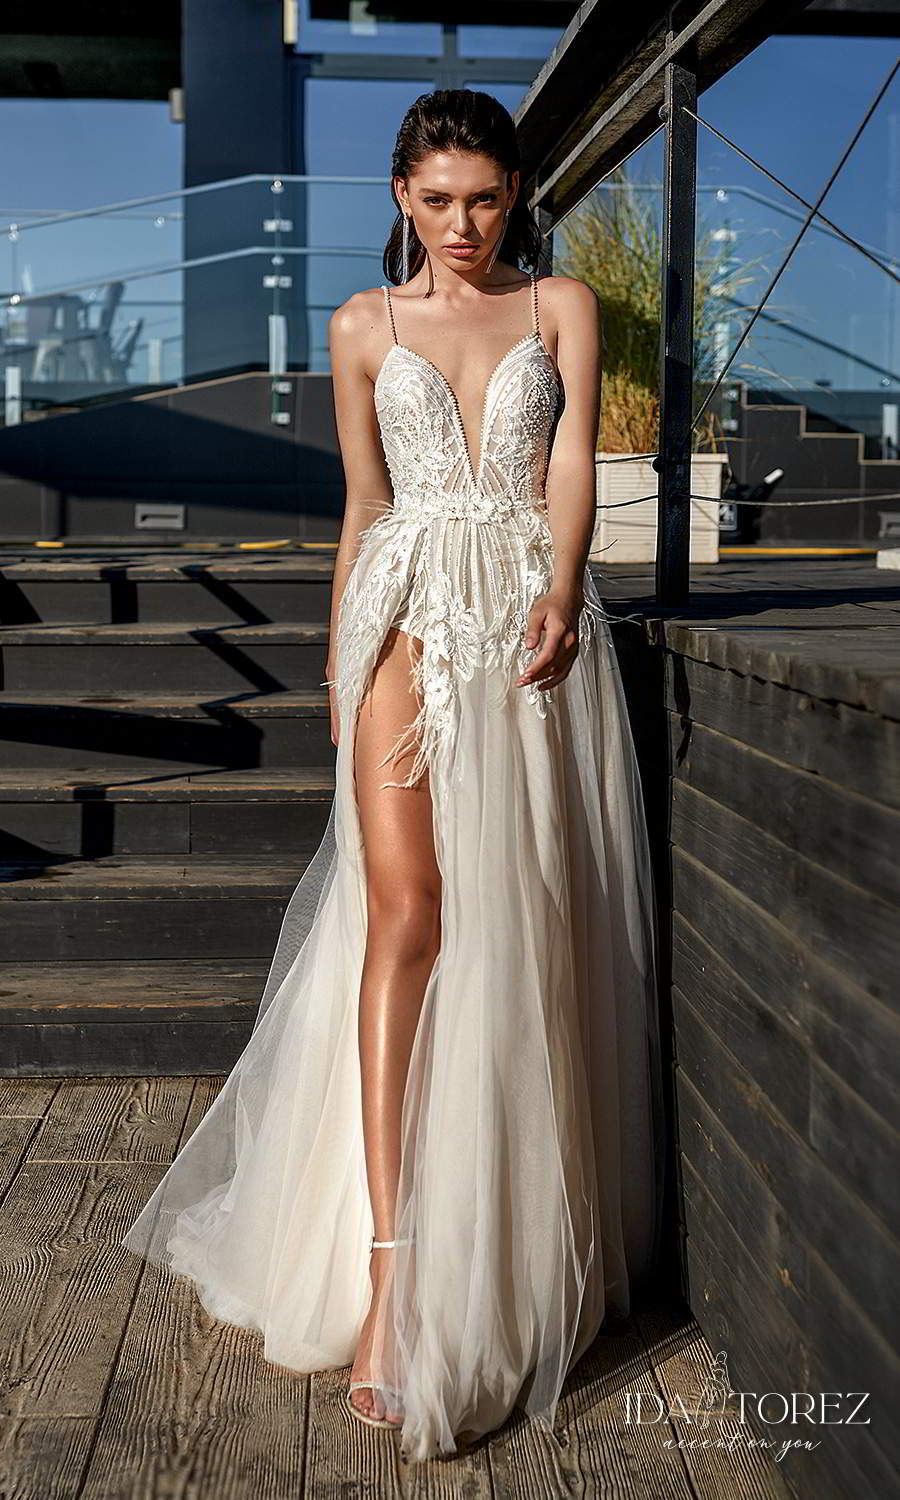 ida torez 2021 bridal sleeveless beaded thin straps plunging v neckline heavily embellished bodice a line ball gown wedding dress slit skirt chapel train (frankness) mv